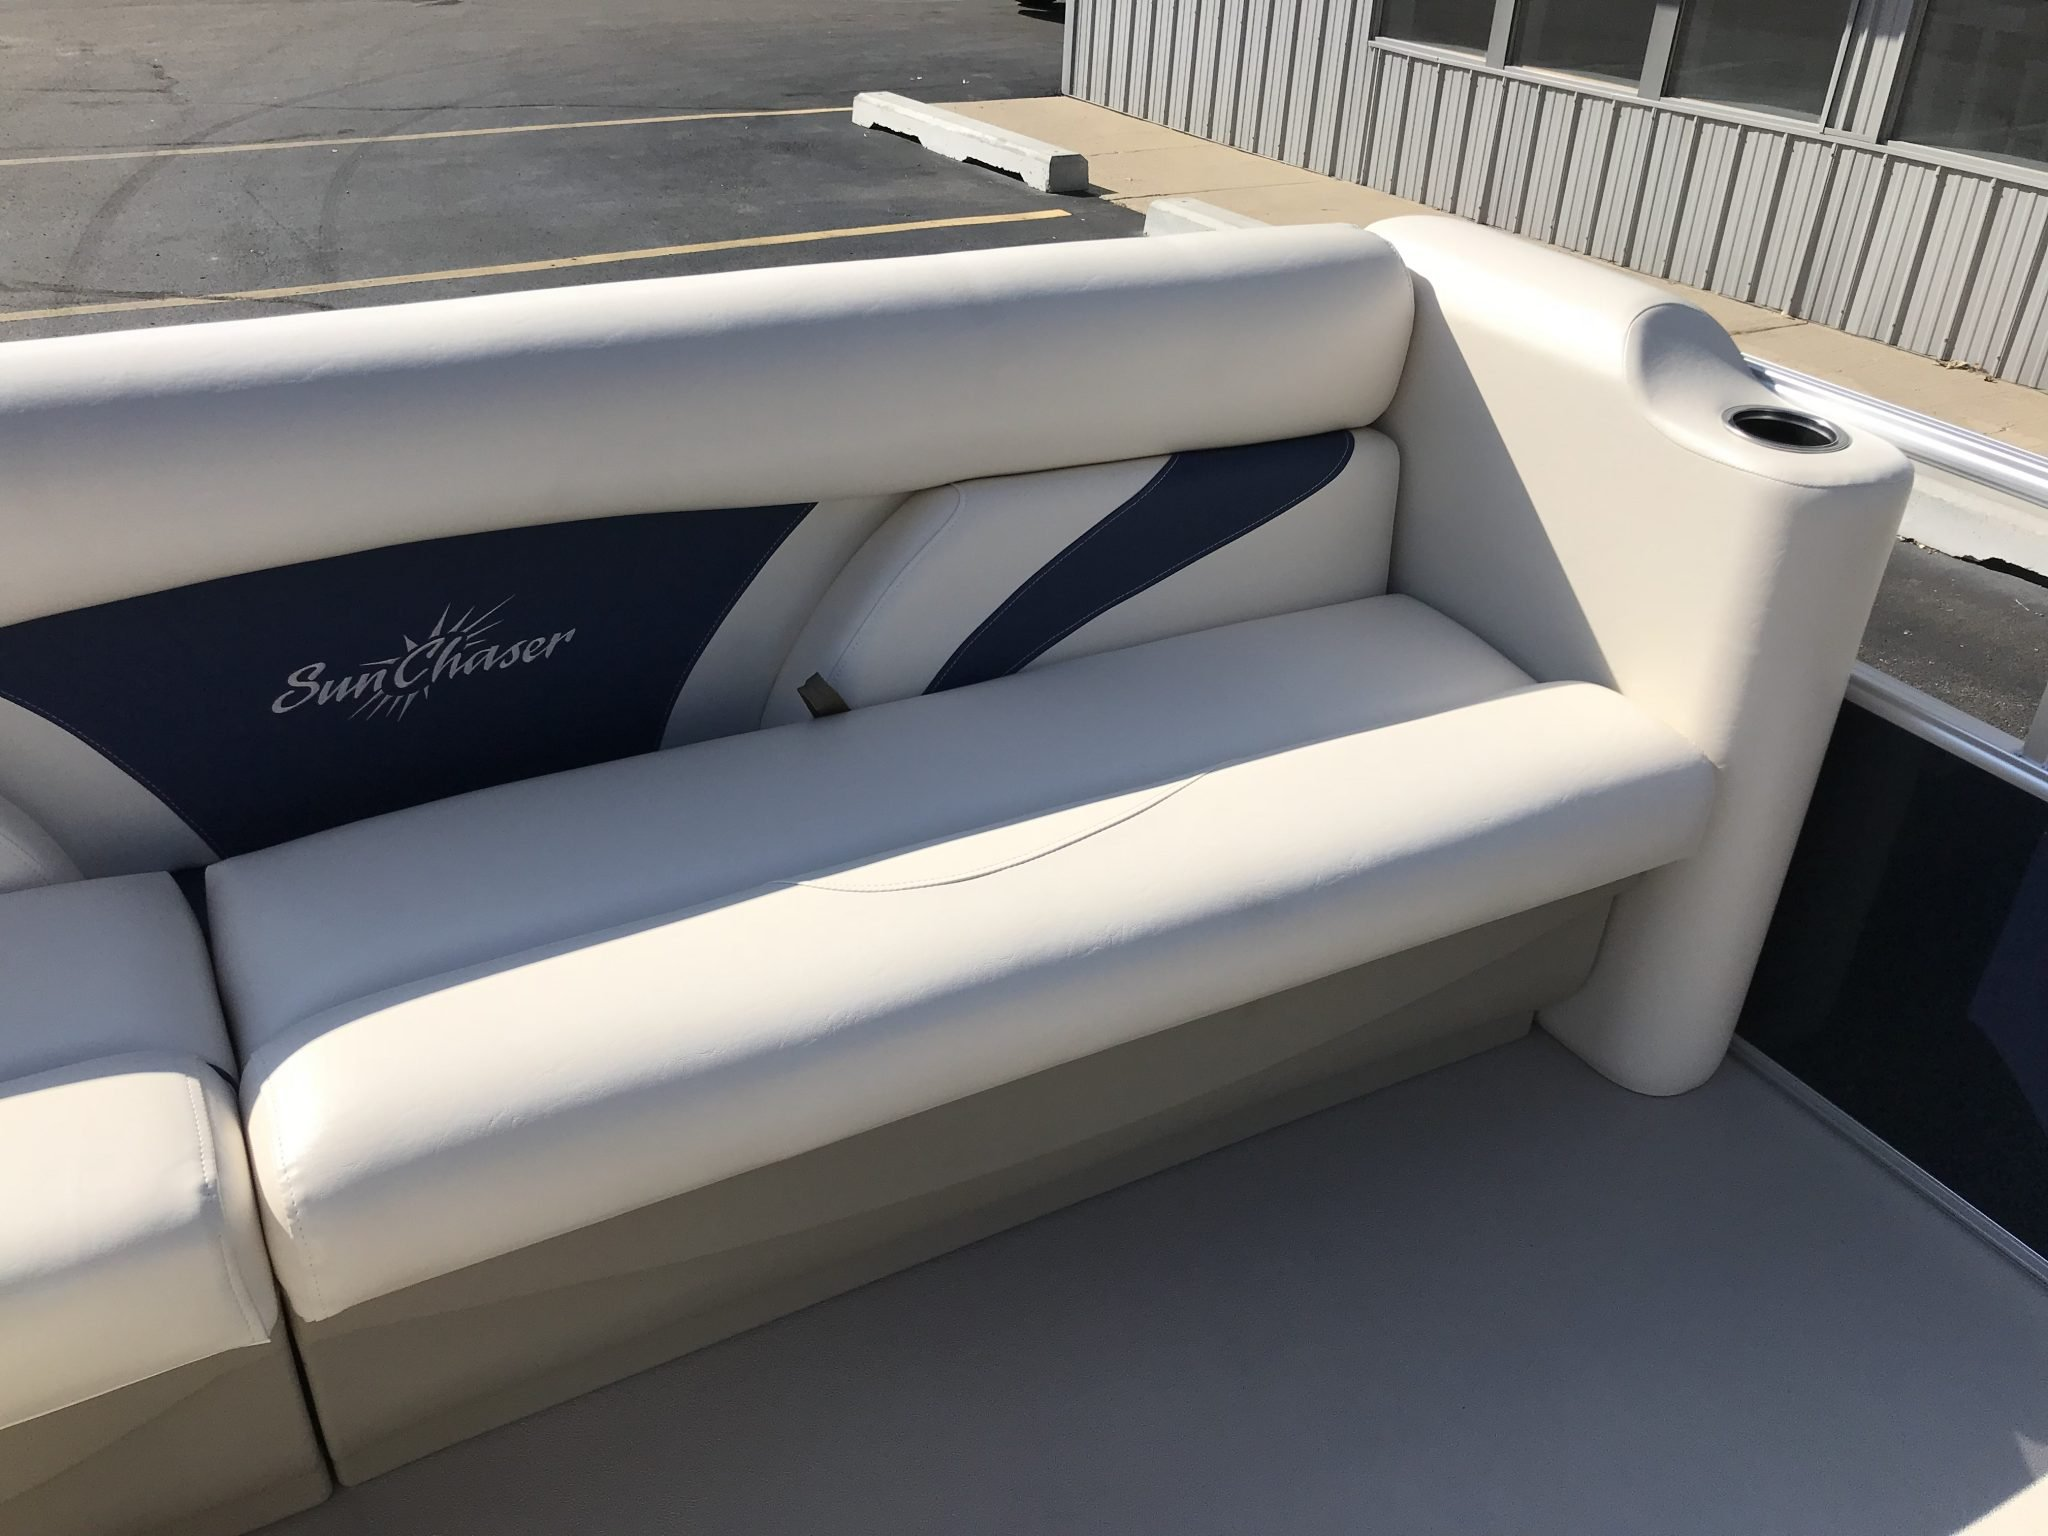 2019 SunChaser 816 Cruise Interior Cockpit Seating 2